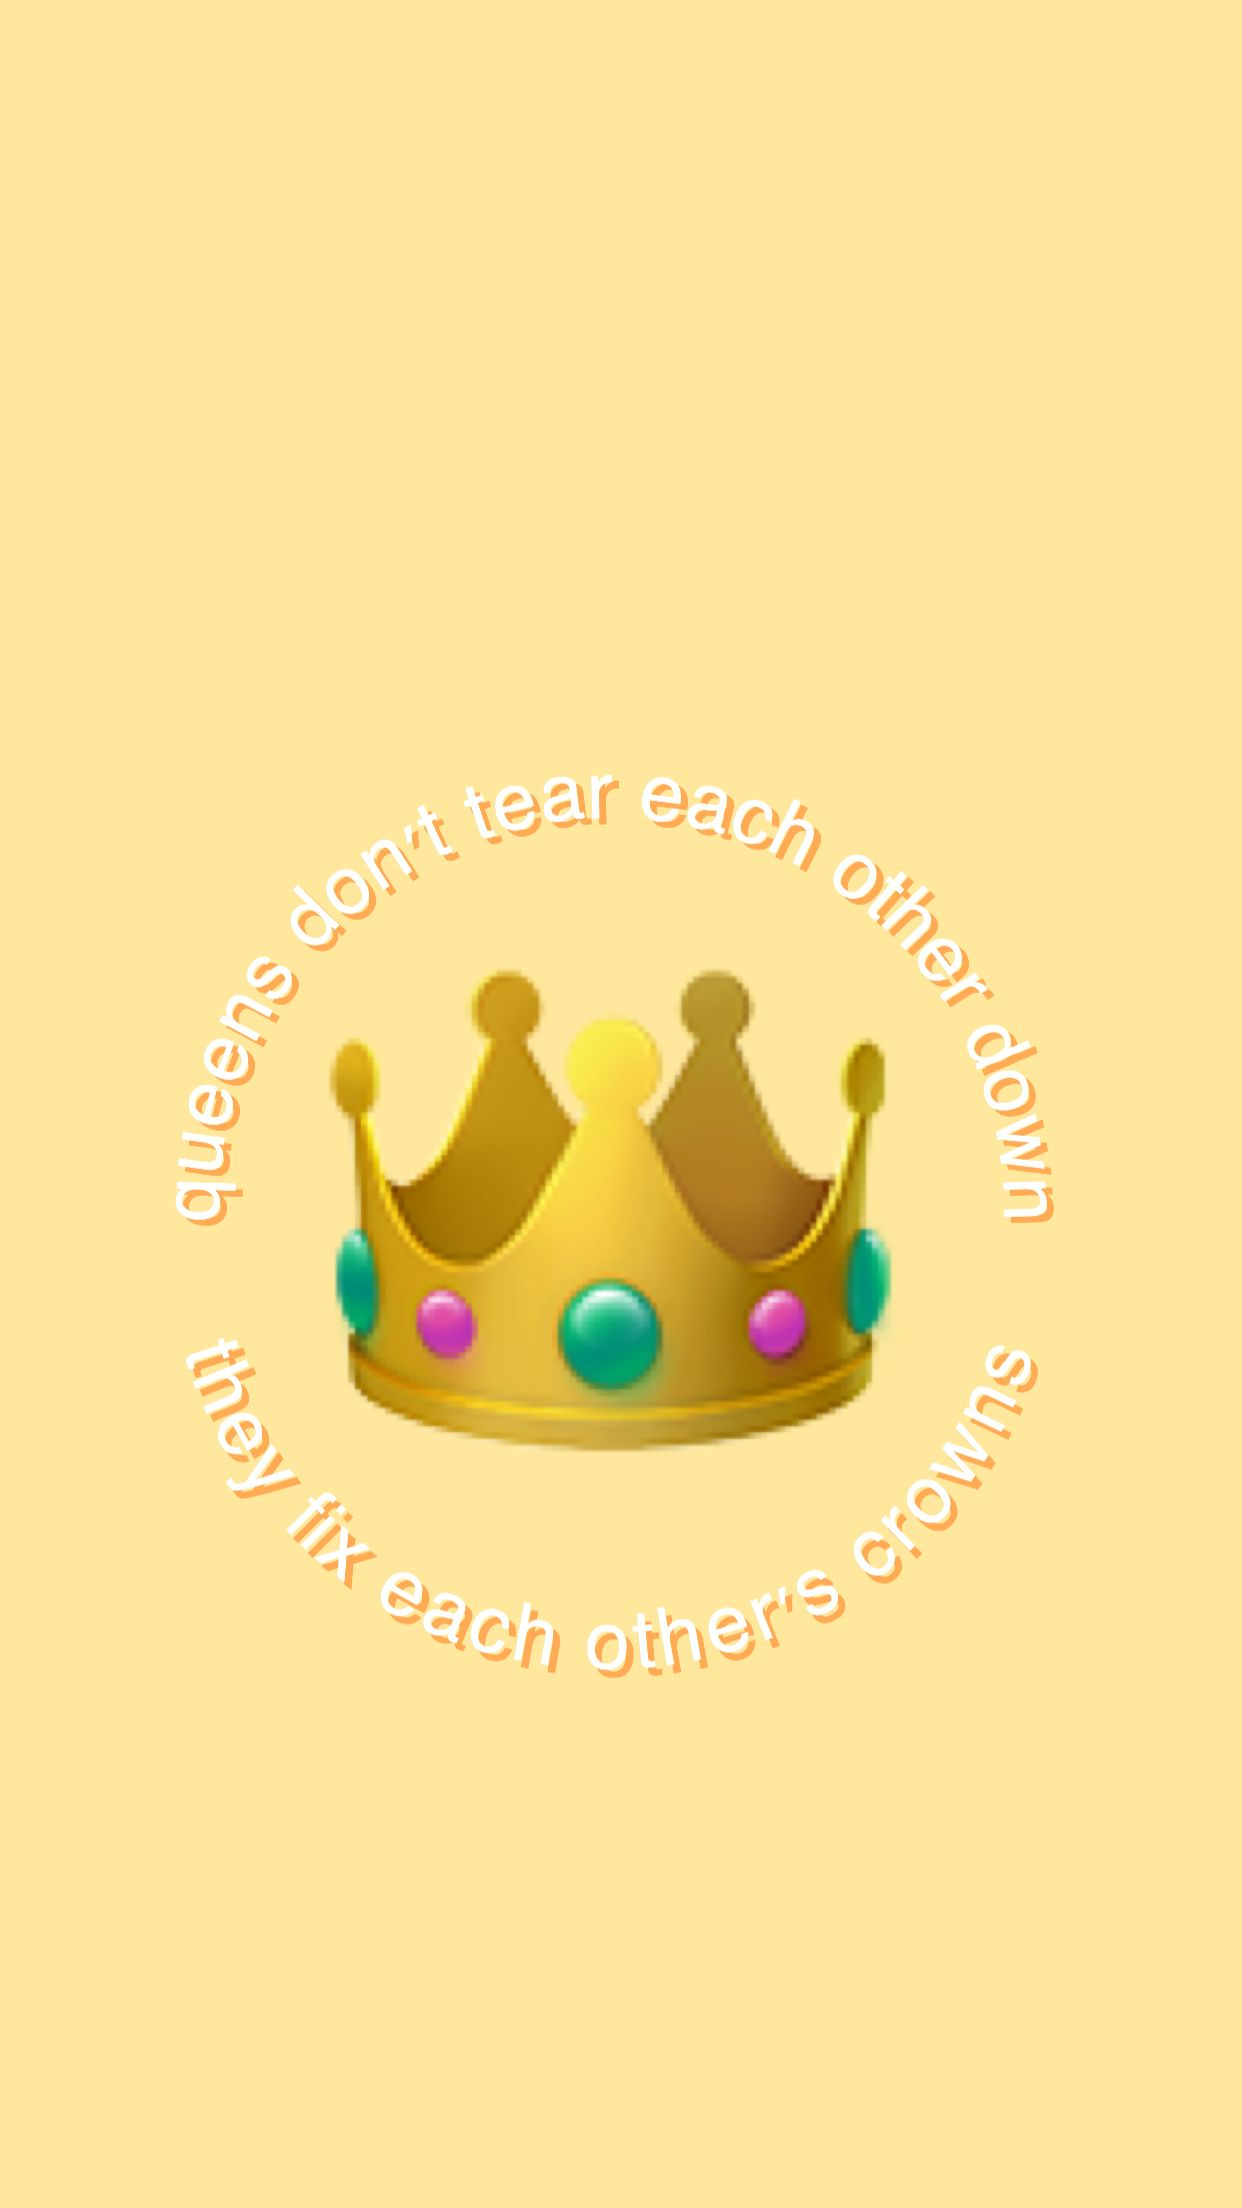 Wallpaper Background Aesthetic Iphone Crown Queen Arthoe Art In